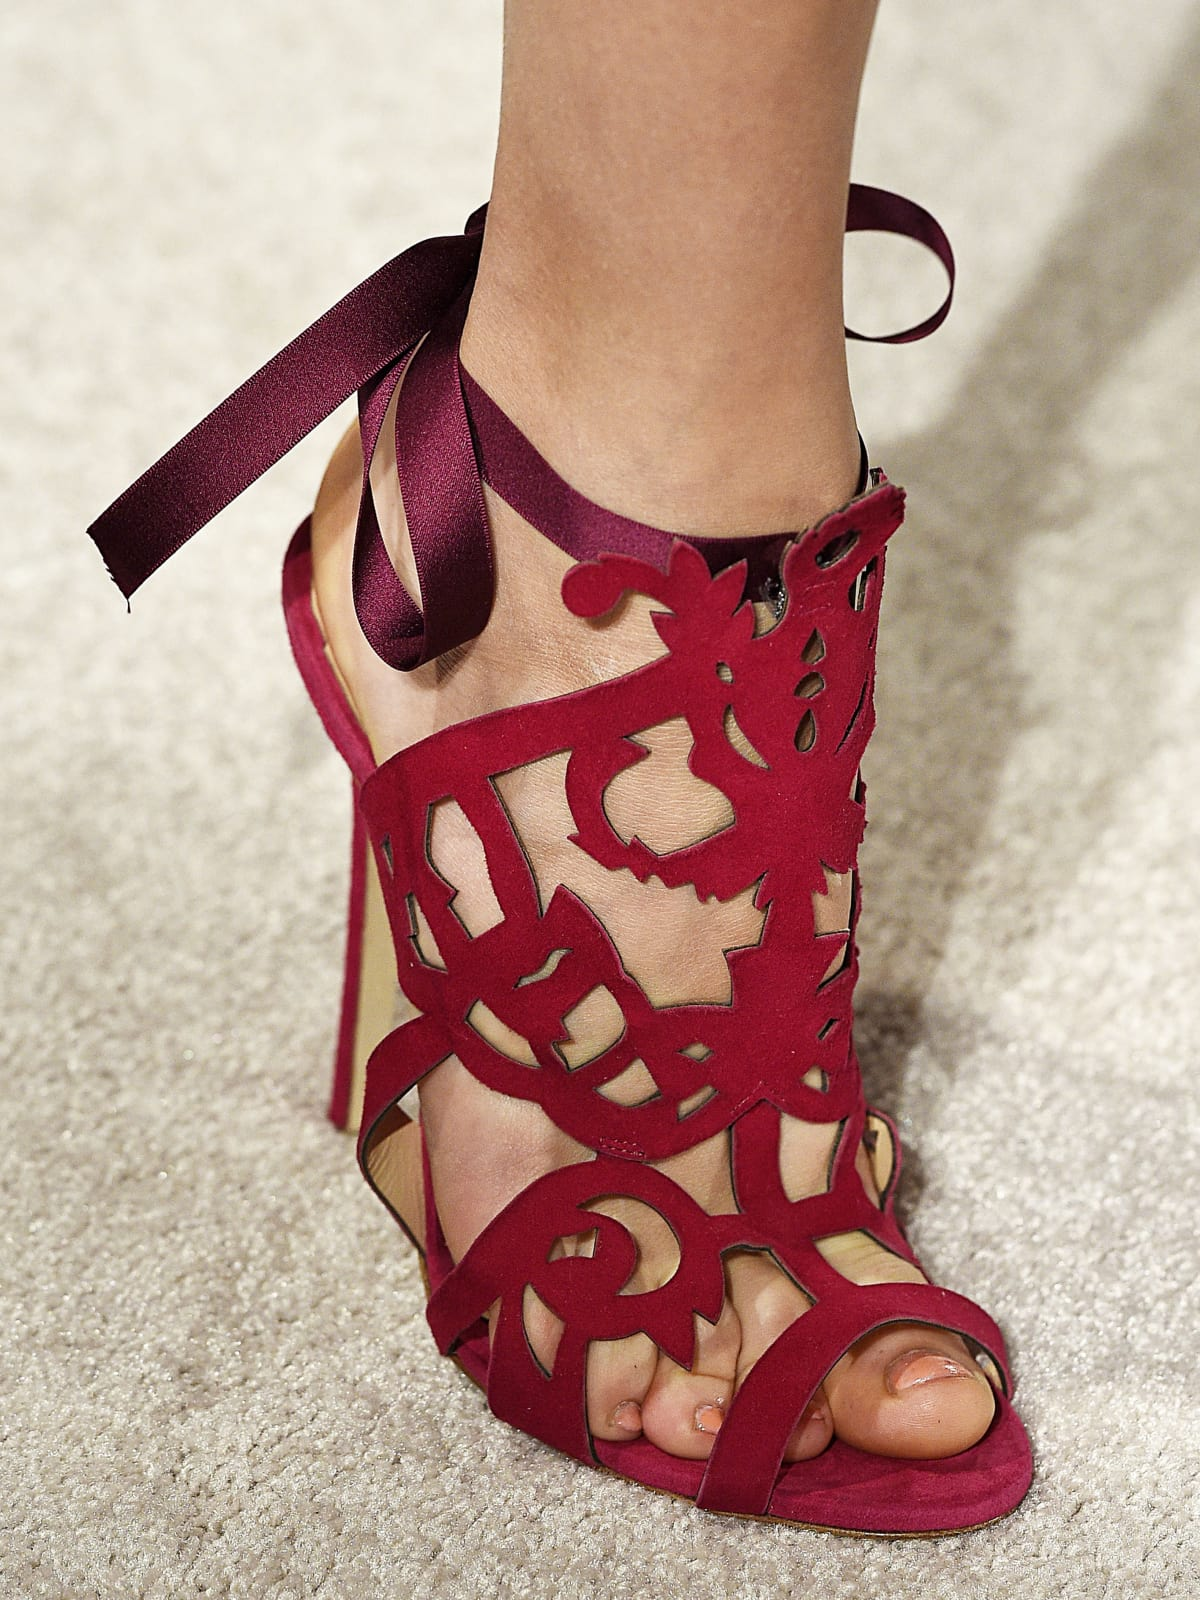 Marchesa new shoe collection